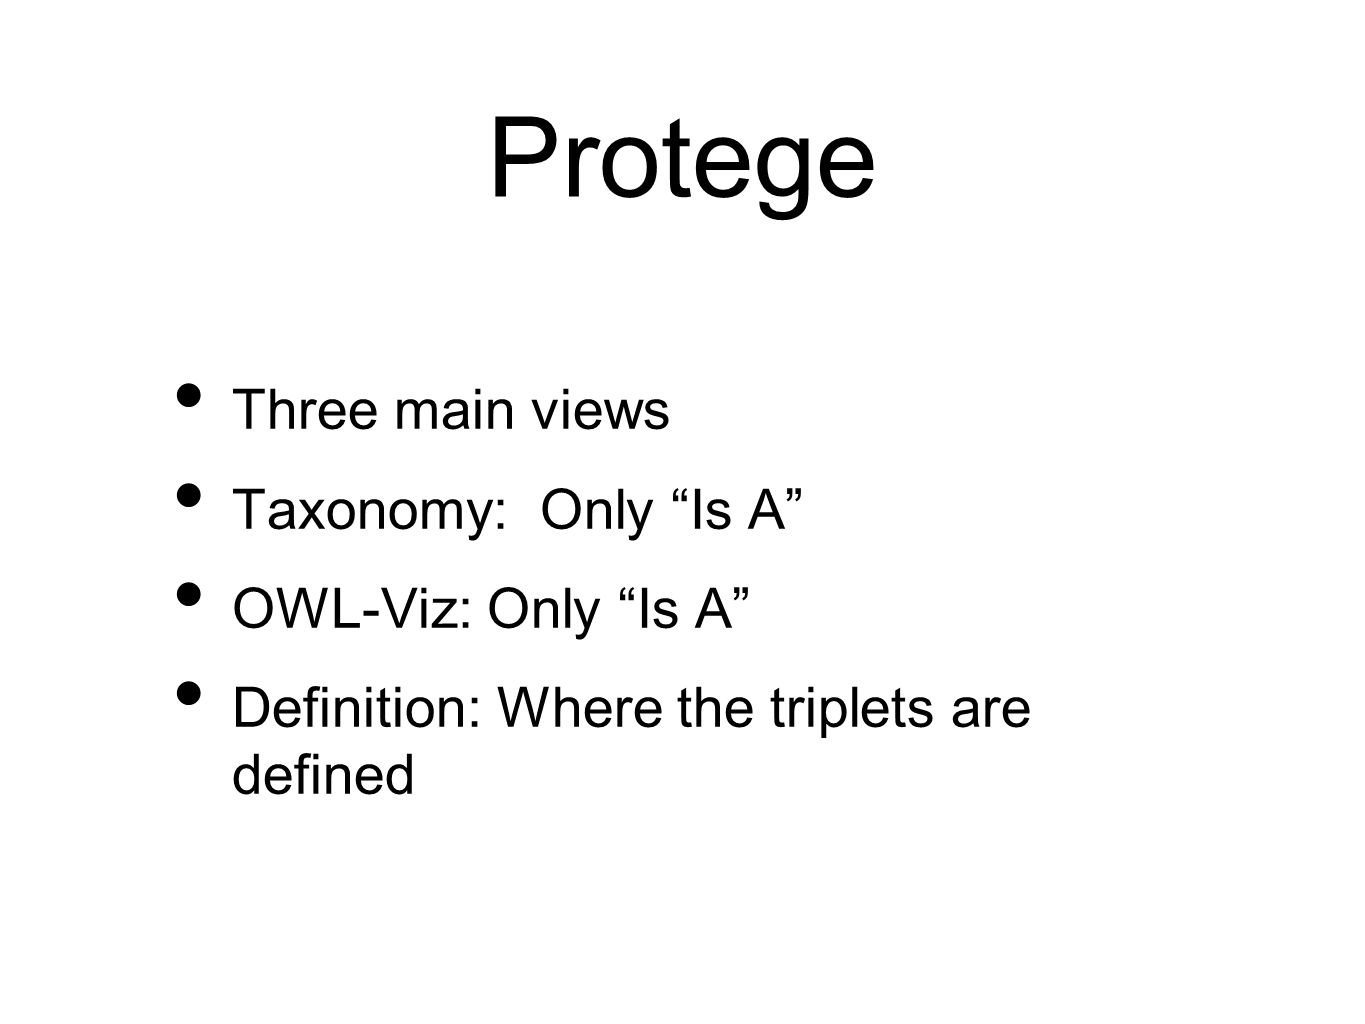 Protege Three main views Taxonomy: Only Is A OWL-Viz: Only Is A